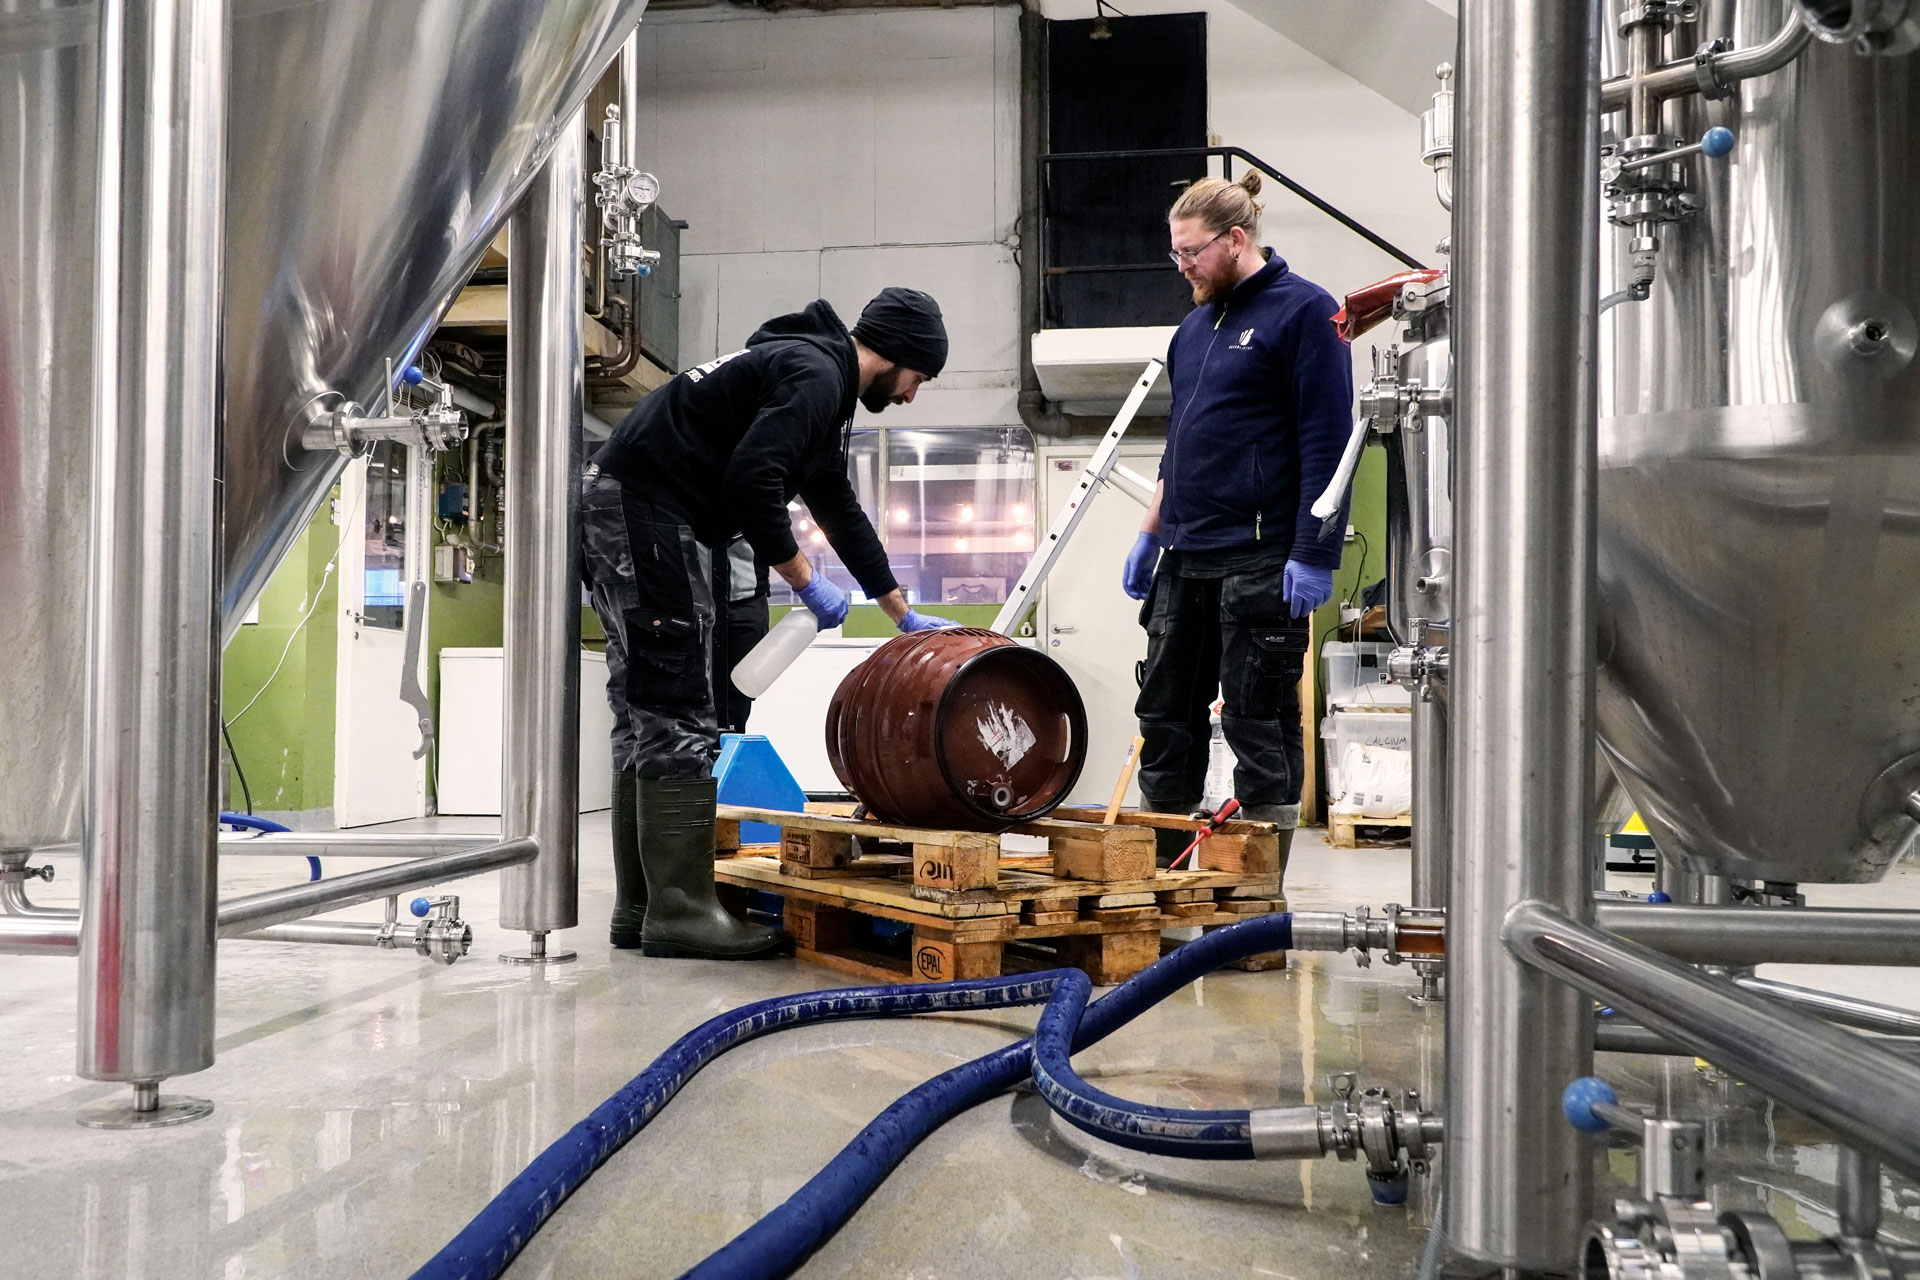 Our bOur brewers, Riccardo and Axel, filling casks with Malt Beverage, an Amber Lager, brewed by Swedish Craft Brewery Beerbliotek.ewers filling casks with Malt Beverage, an Amber Lager, brewed by Swedish Craft Brewery Beerbliotek.